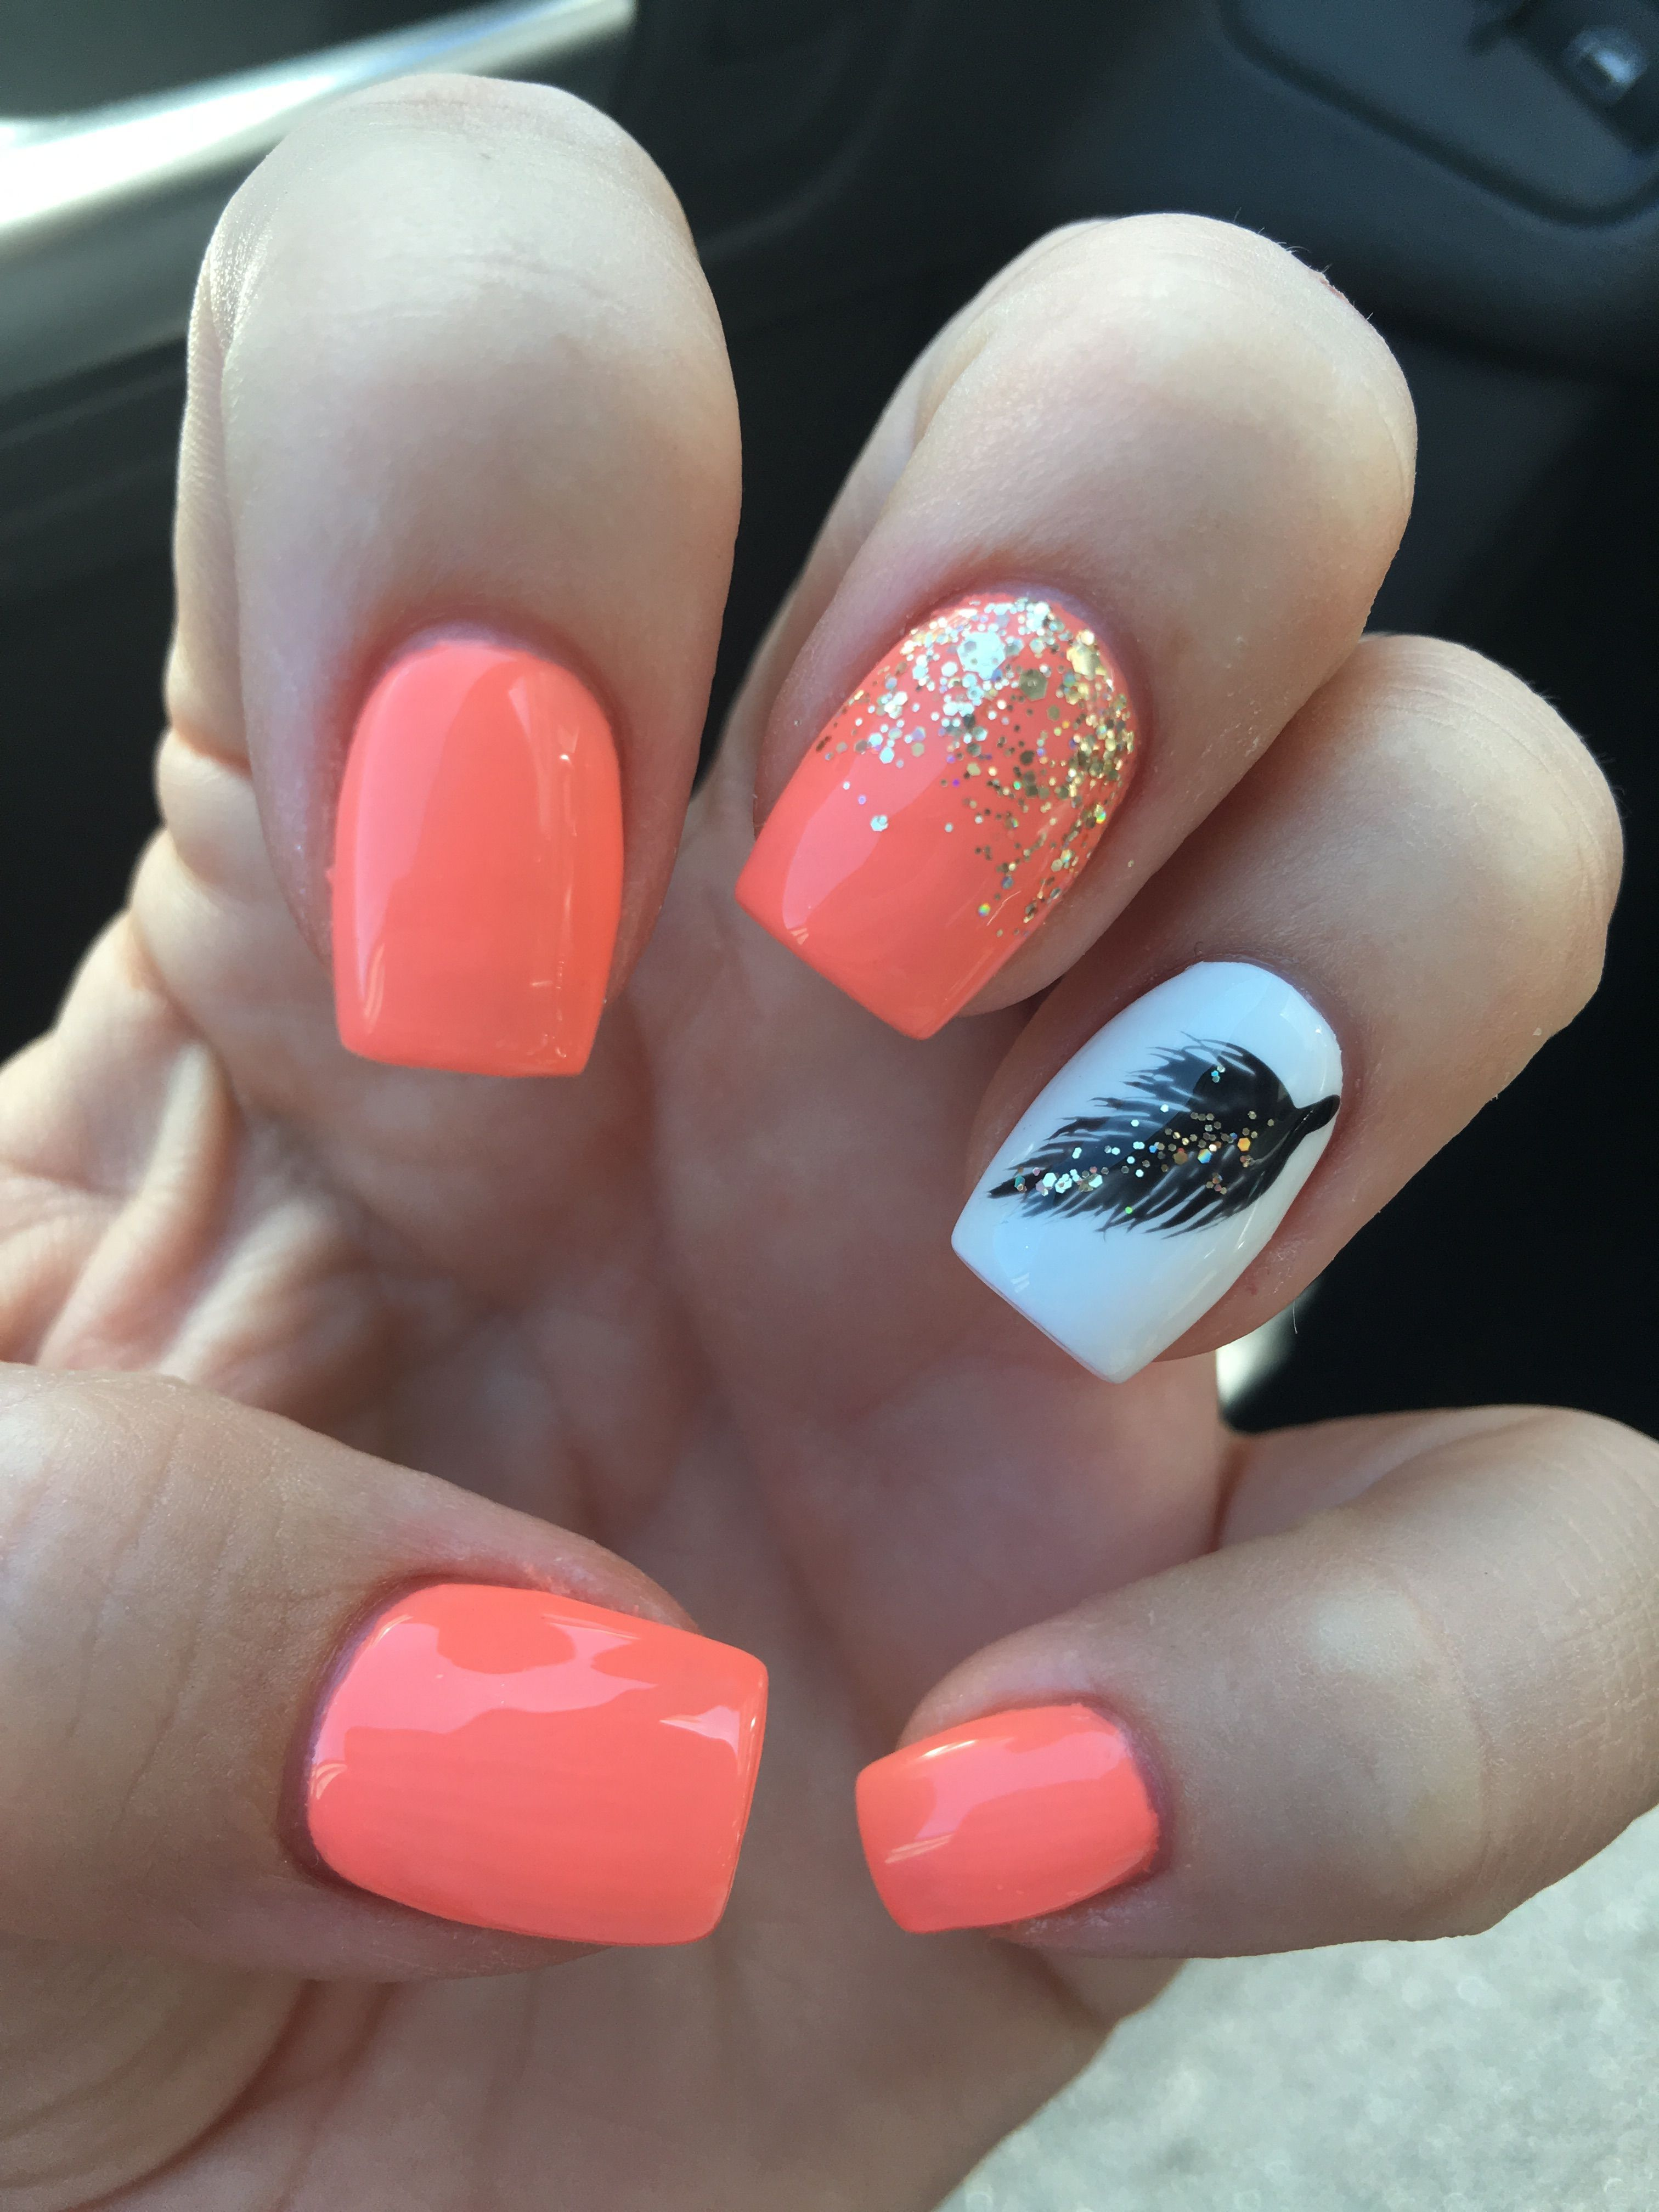 Black Gold Nails Coral Nails With Gold Glitter White And Black Hand Painted Fea Black Coral Fea Glitte In 2020 Feather Nails Coral Nails Coral Nails With Design